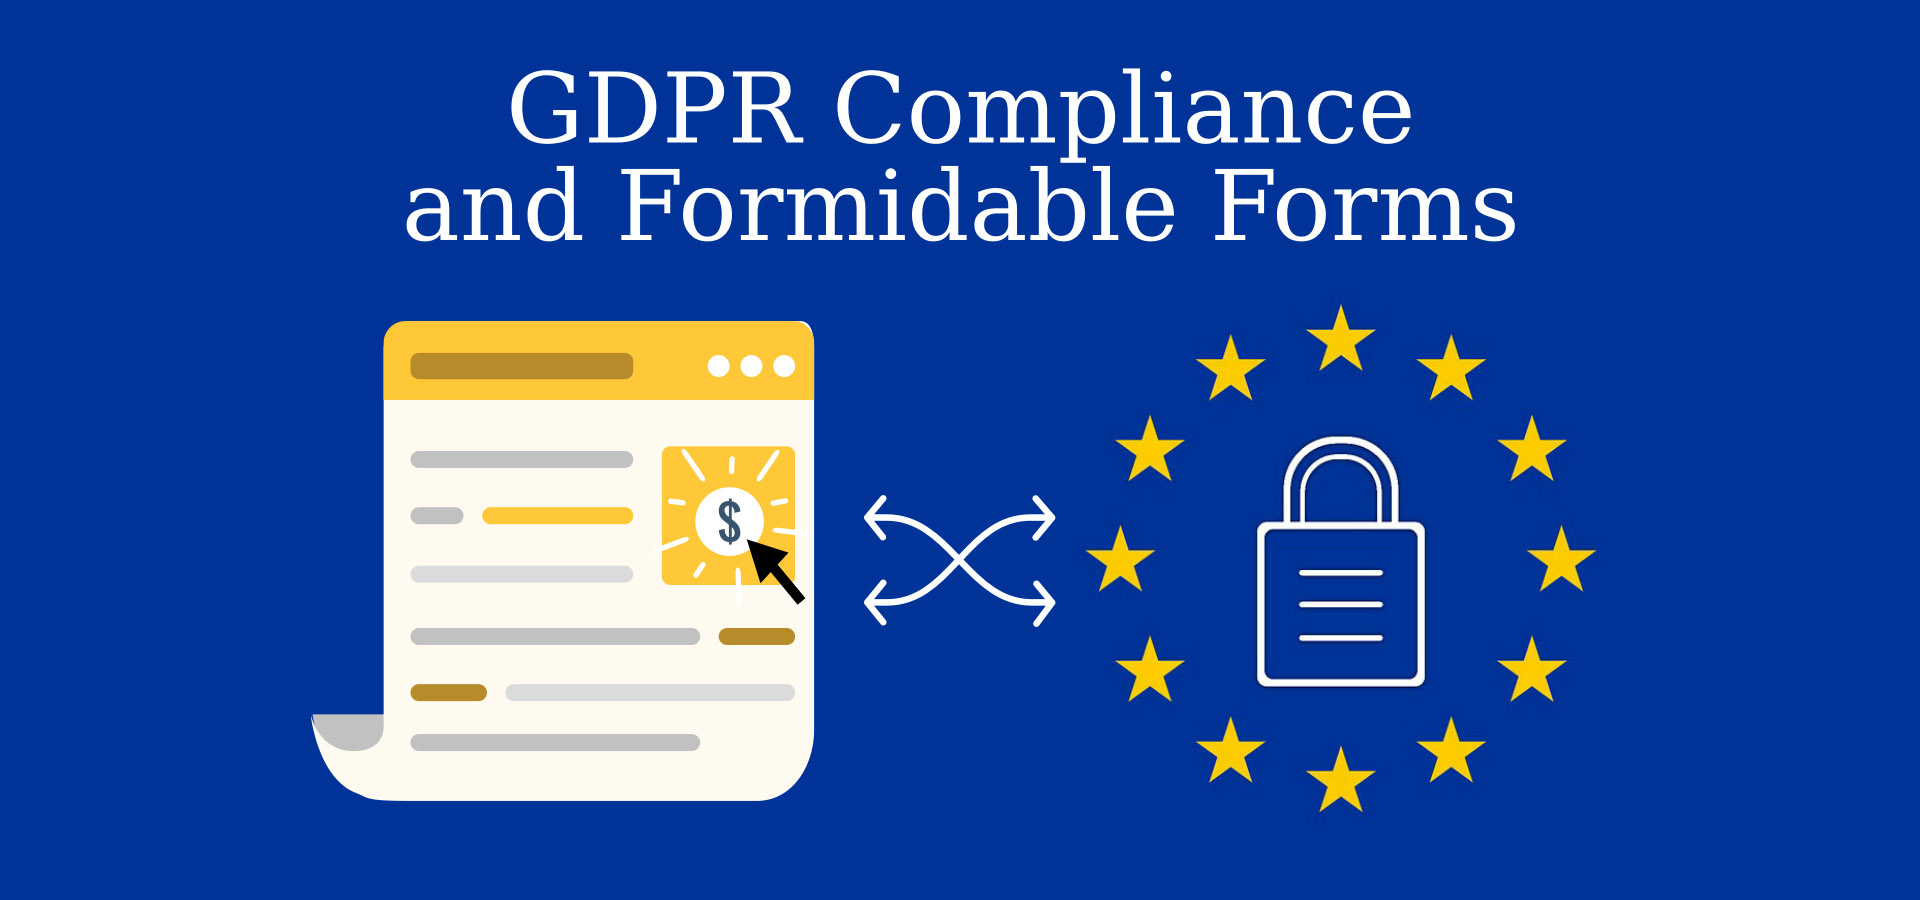 free opt in form templates - how to make gdpr compliant wordpress forms formidable forms